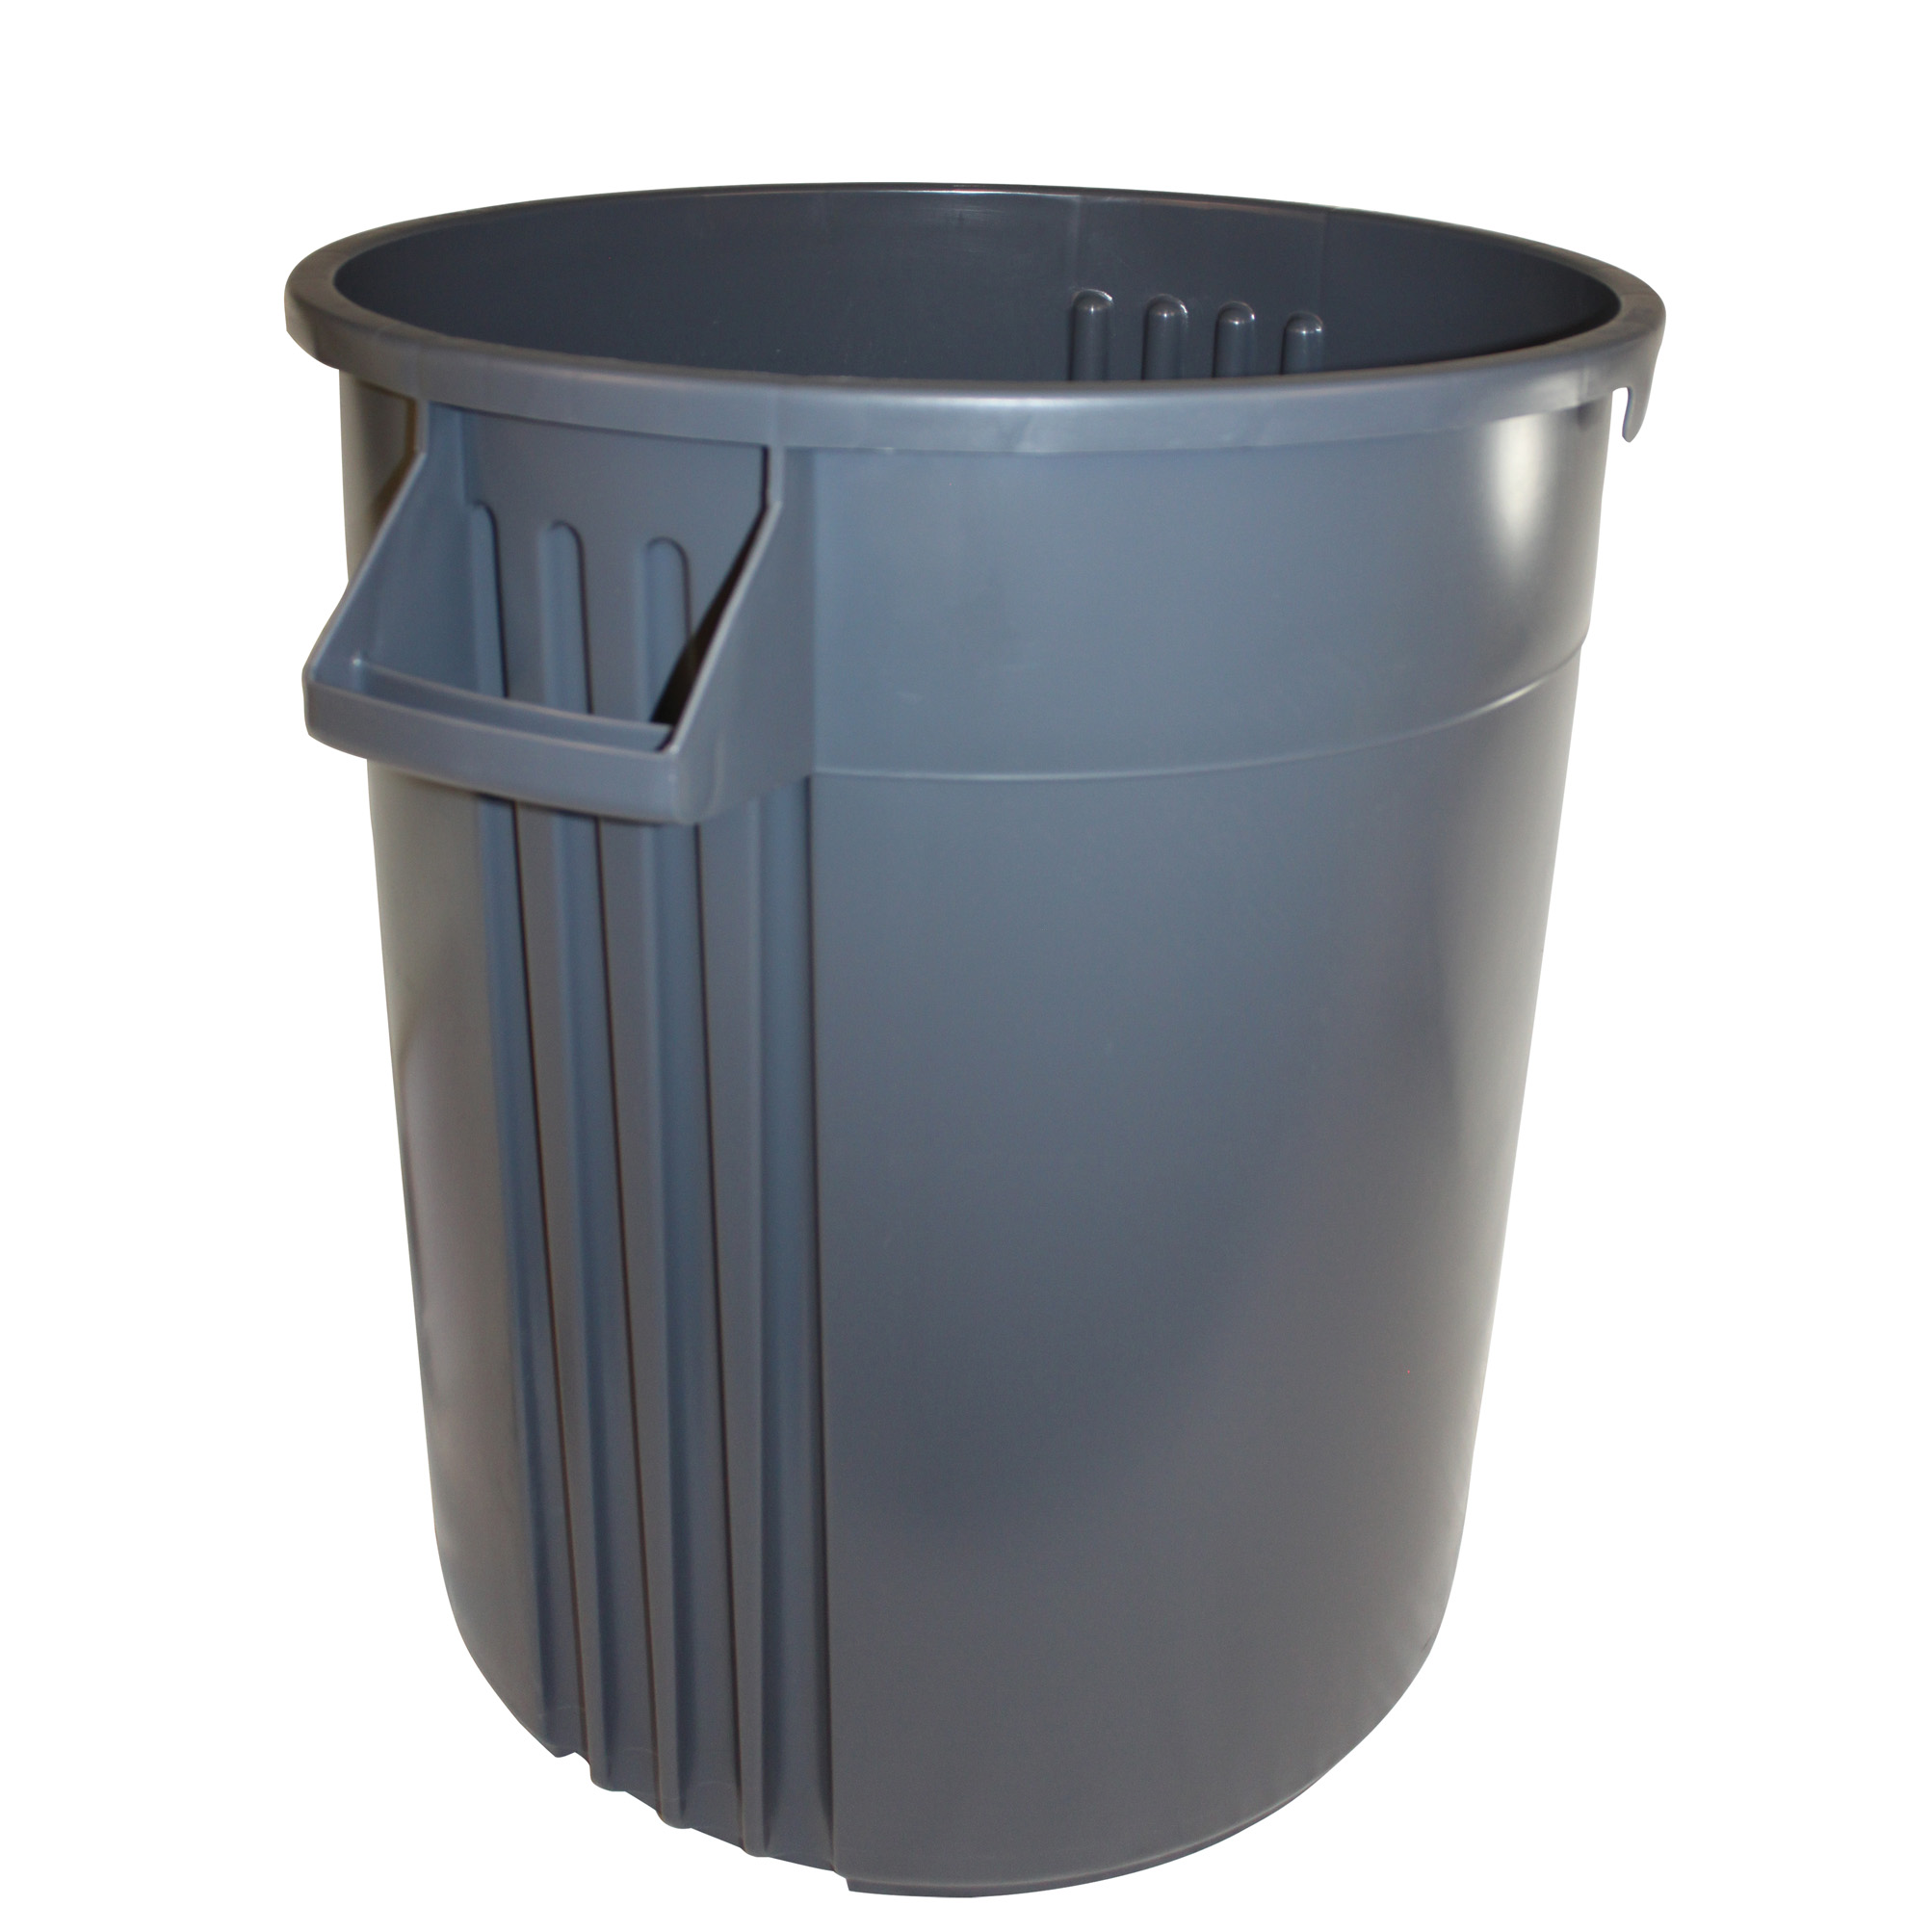 3700-03 Impact Products 7732-3 trash can / container, commercial